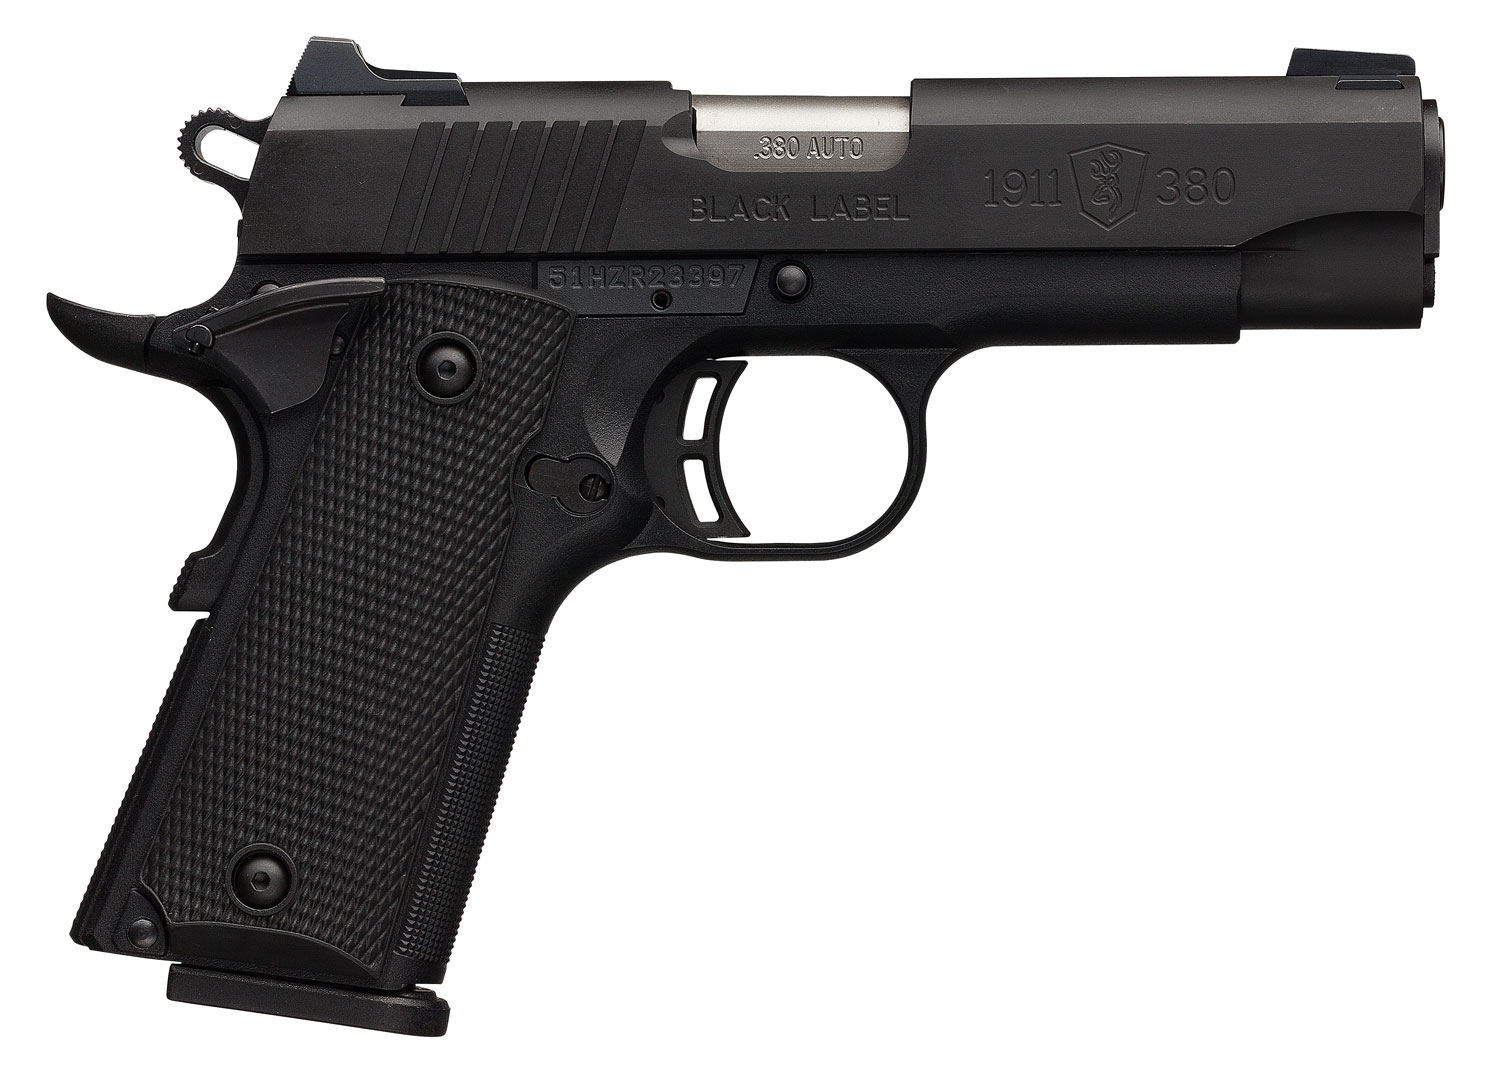 Browning 051941492 1911 Black Label Special Compact  380 Automatic Colt Pistol (ACP) Single 3.625